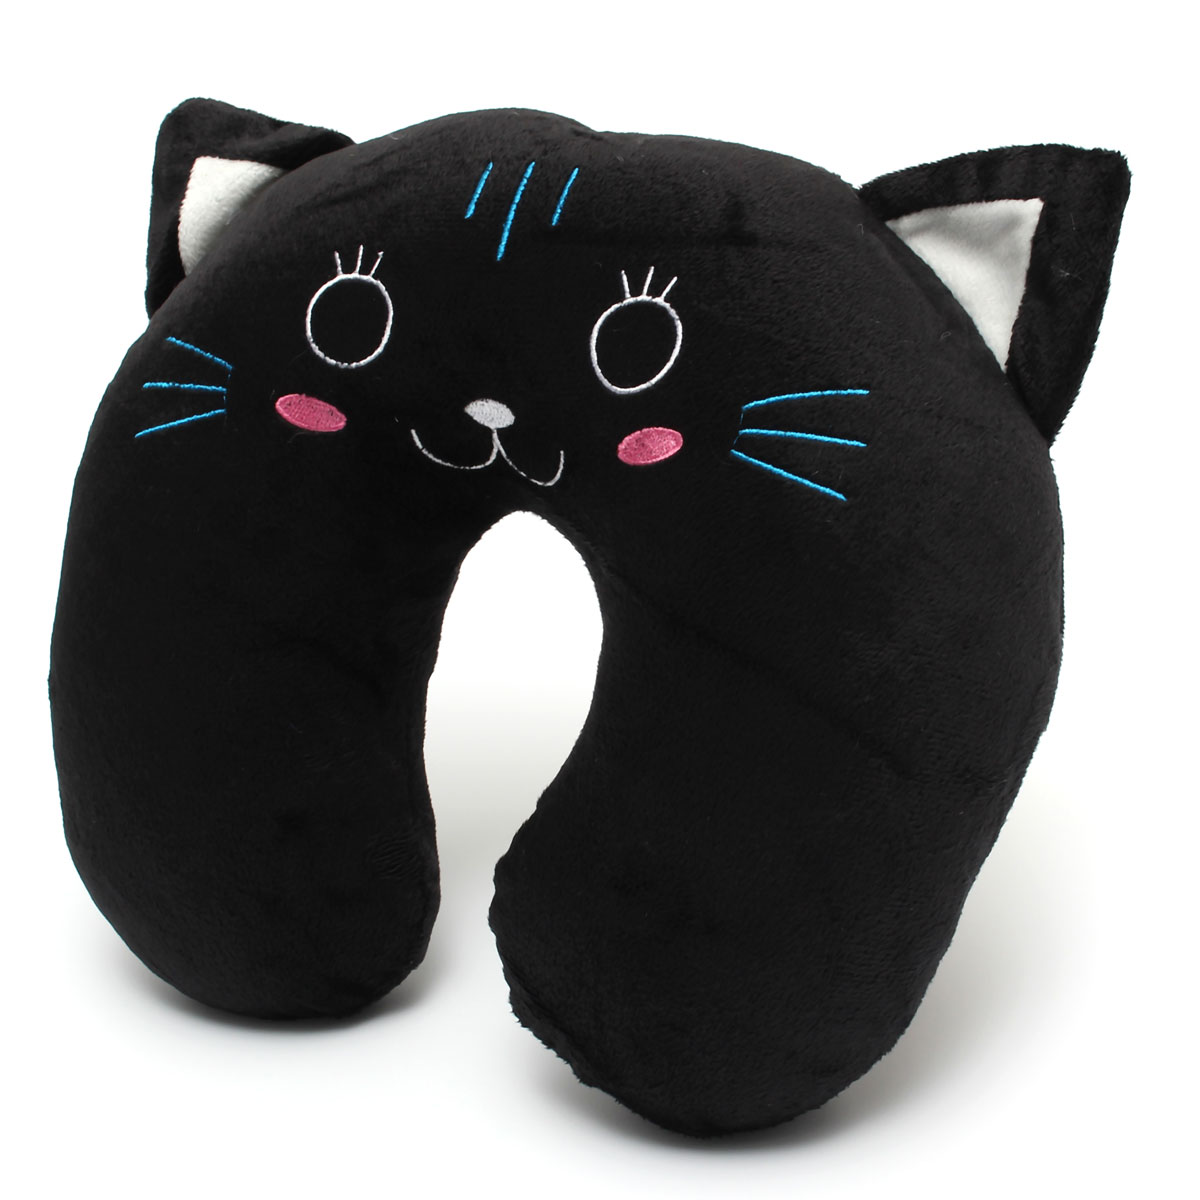 Cute Neck Pillows For Travel : HKS Cute Animal Neck U-Shape Pillow Headrest Car Flight Travel Soft Nursing Cushion Black Cat ...